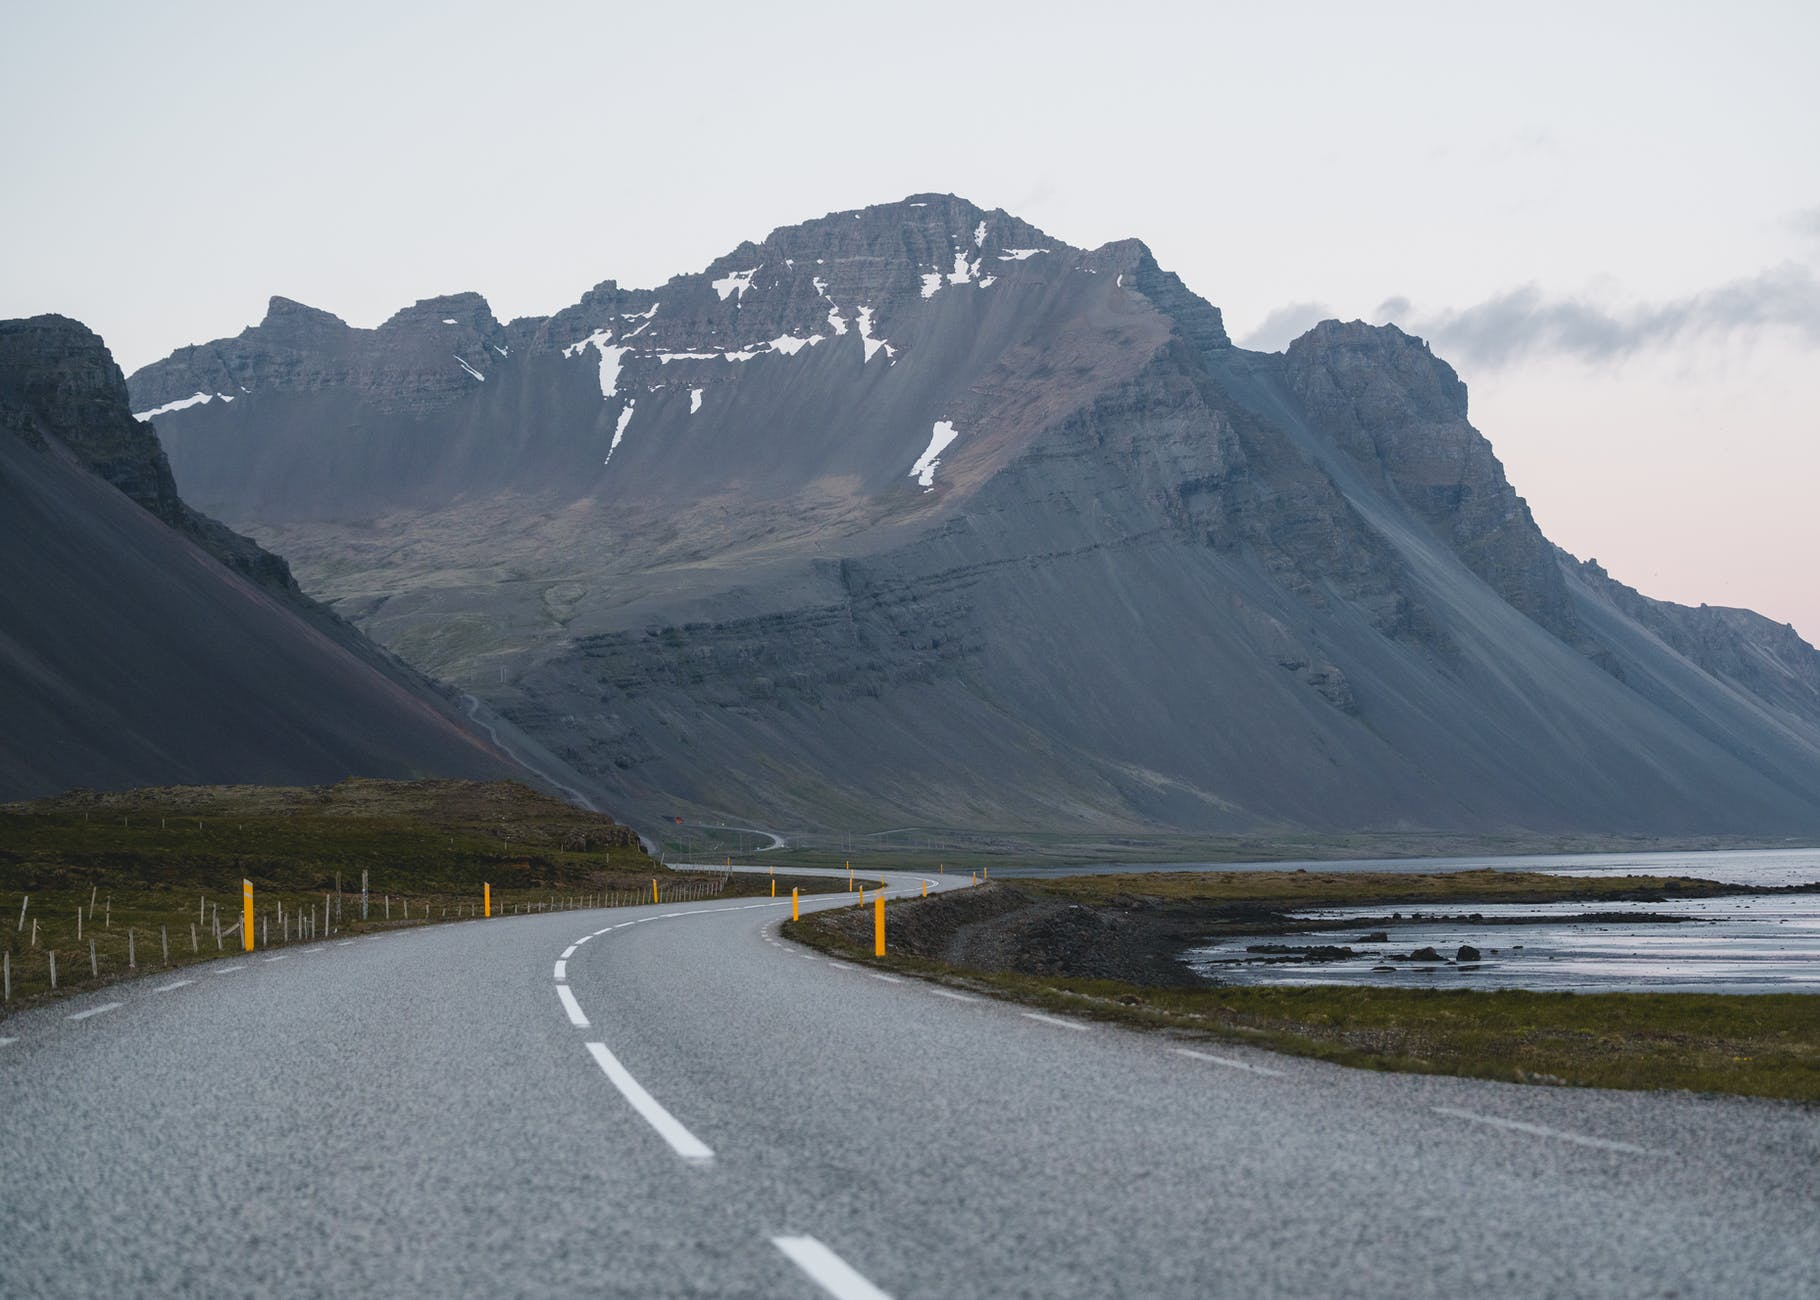 empty road against mountain background